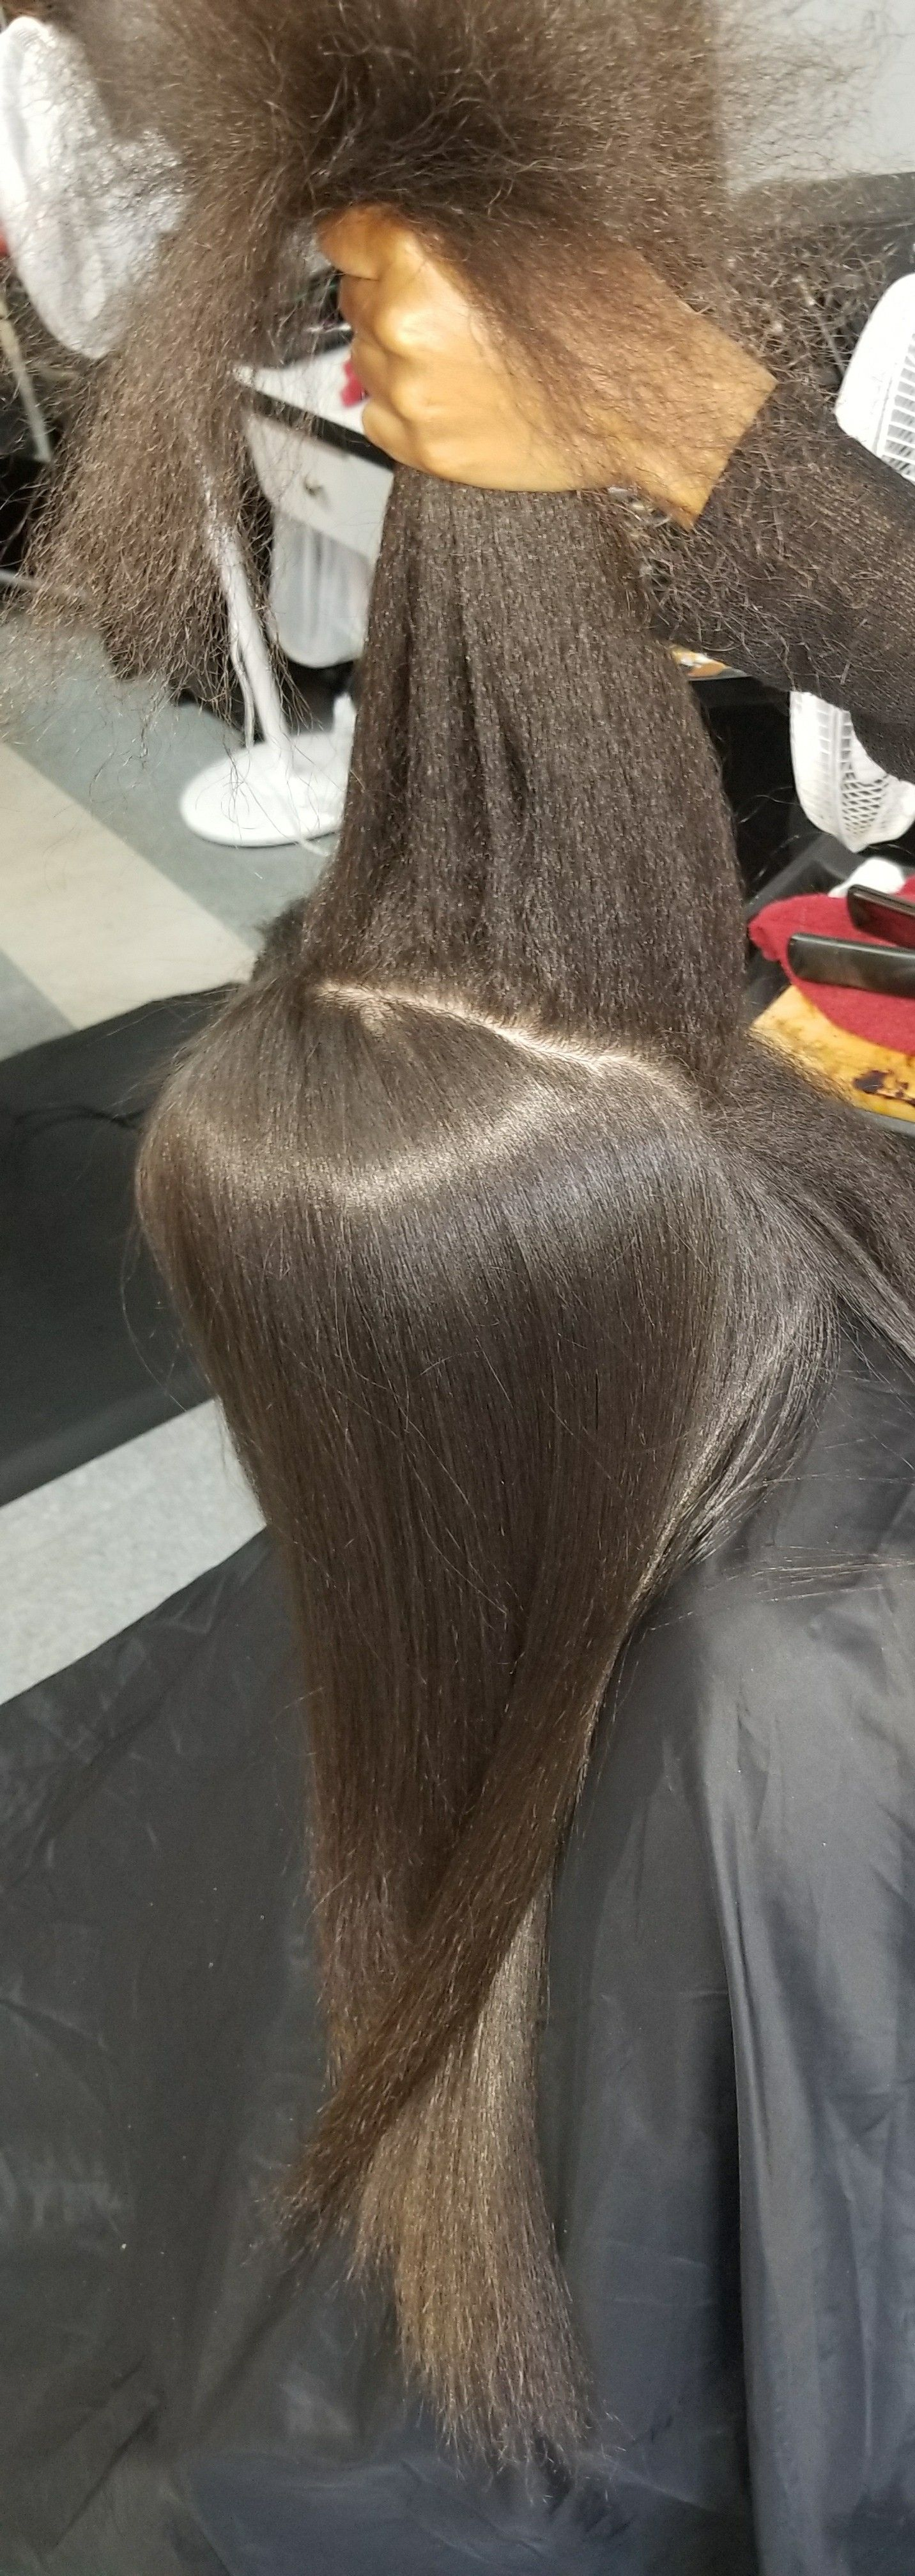 Long Hair Managed With The Wright Hair Products Sold At Rdt Hair Salon Long Hair Styles Hair Salon Wright